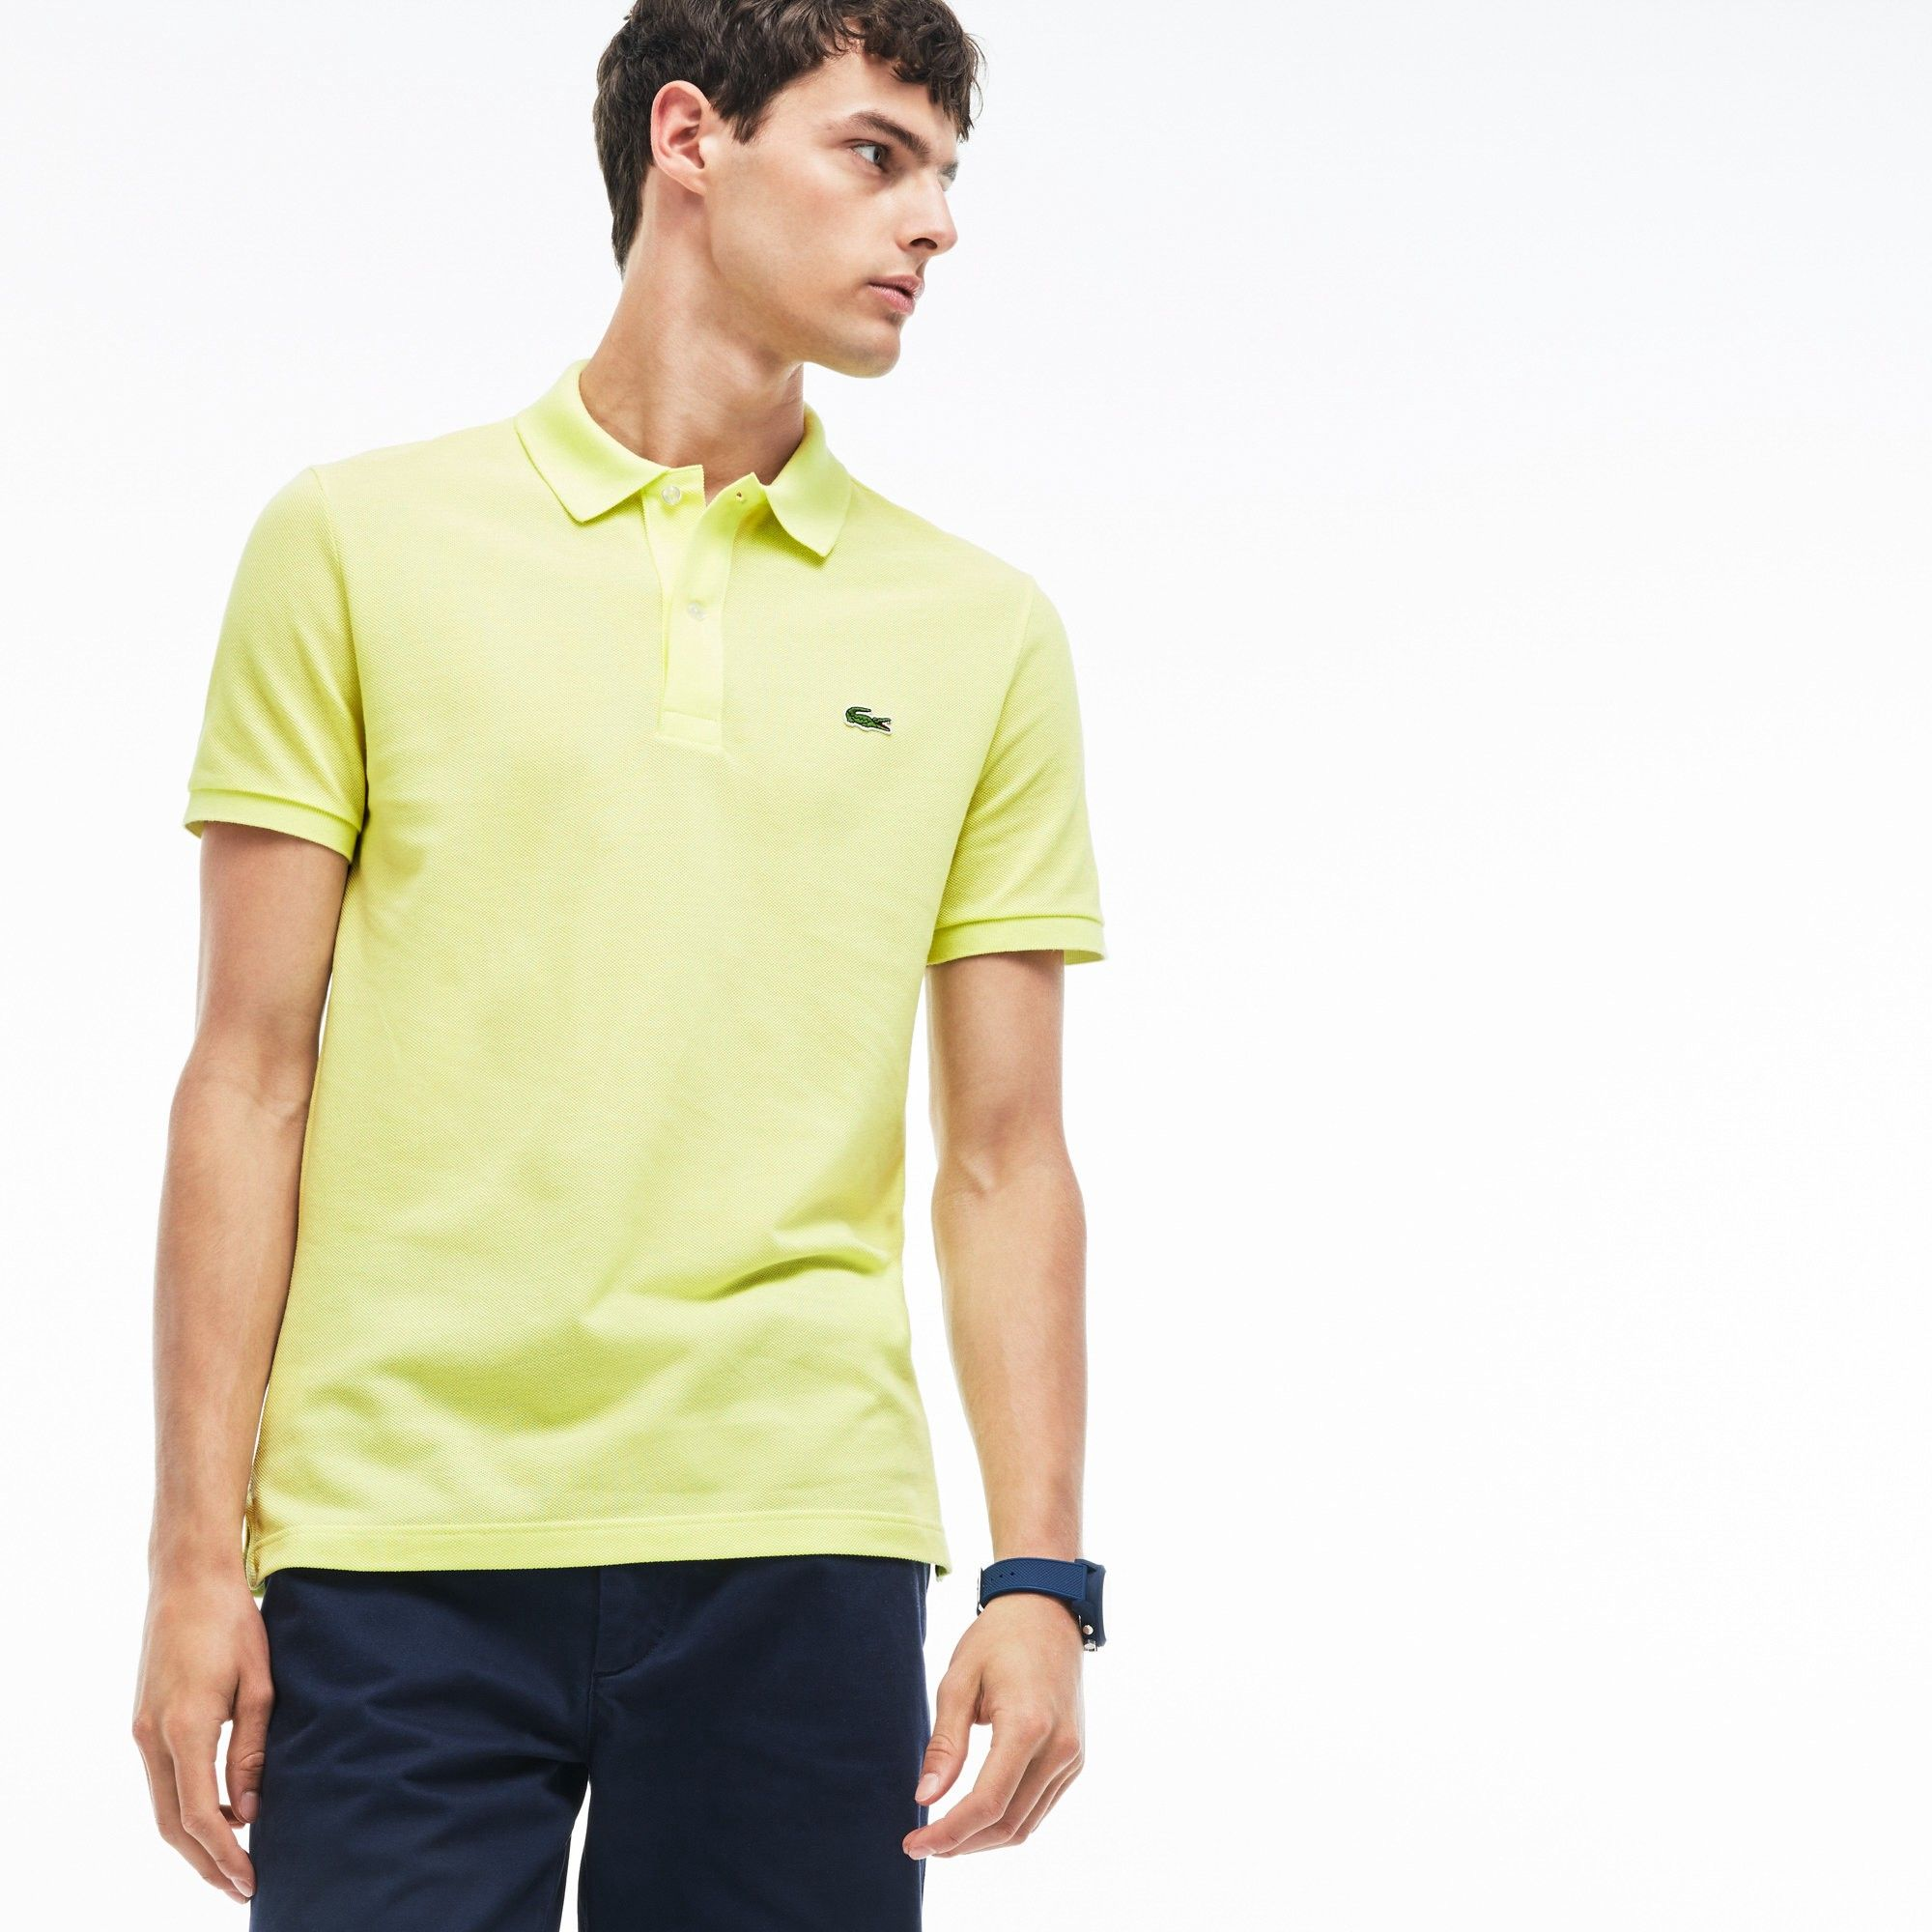 34e493e3e LACOSTE Men's Slim Fit Petit Piqué Polo Shirt - limeira. #lacoste #cloth #